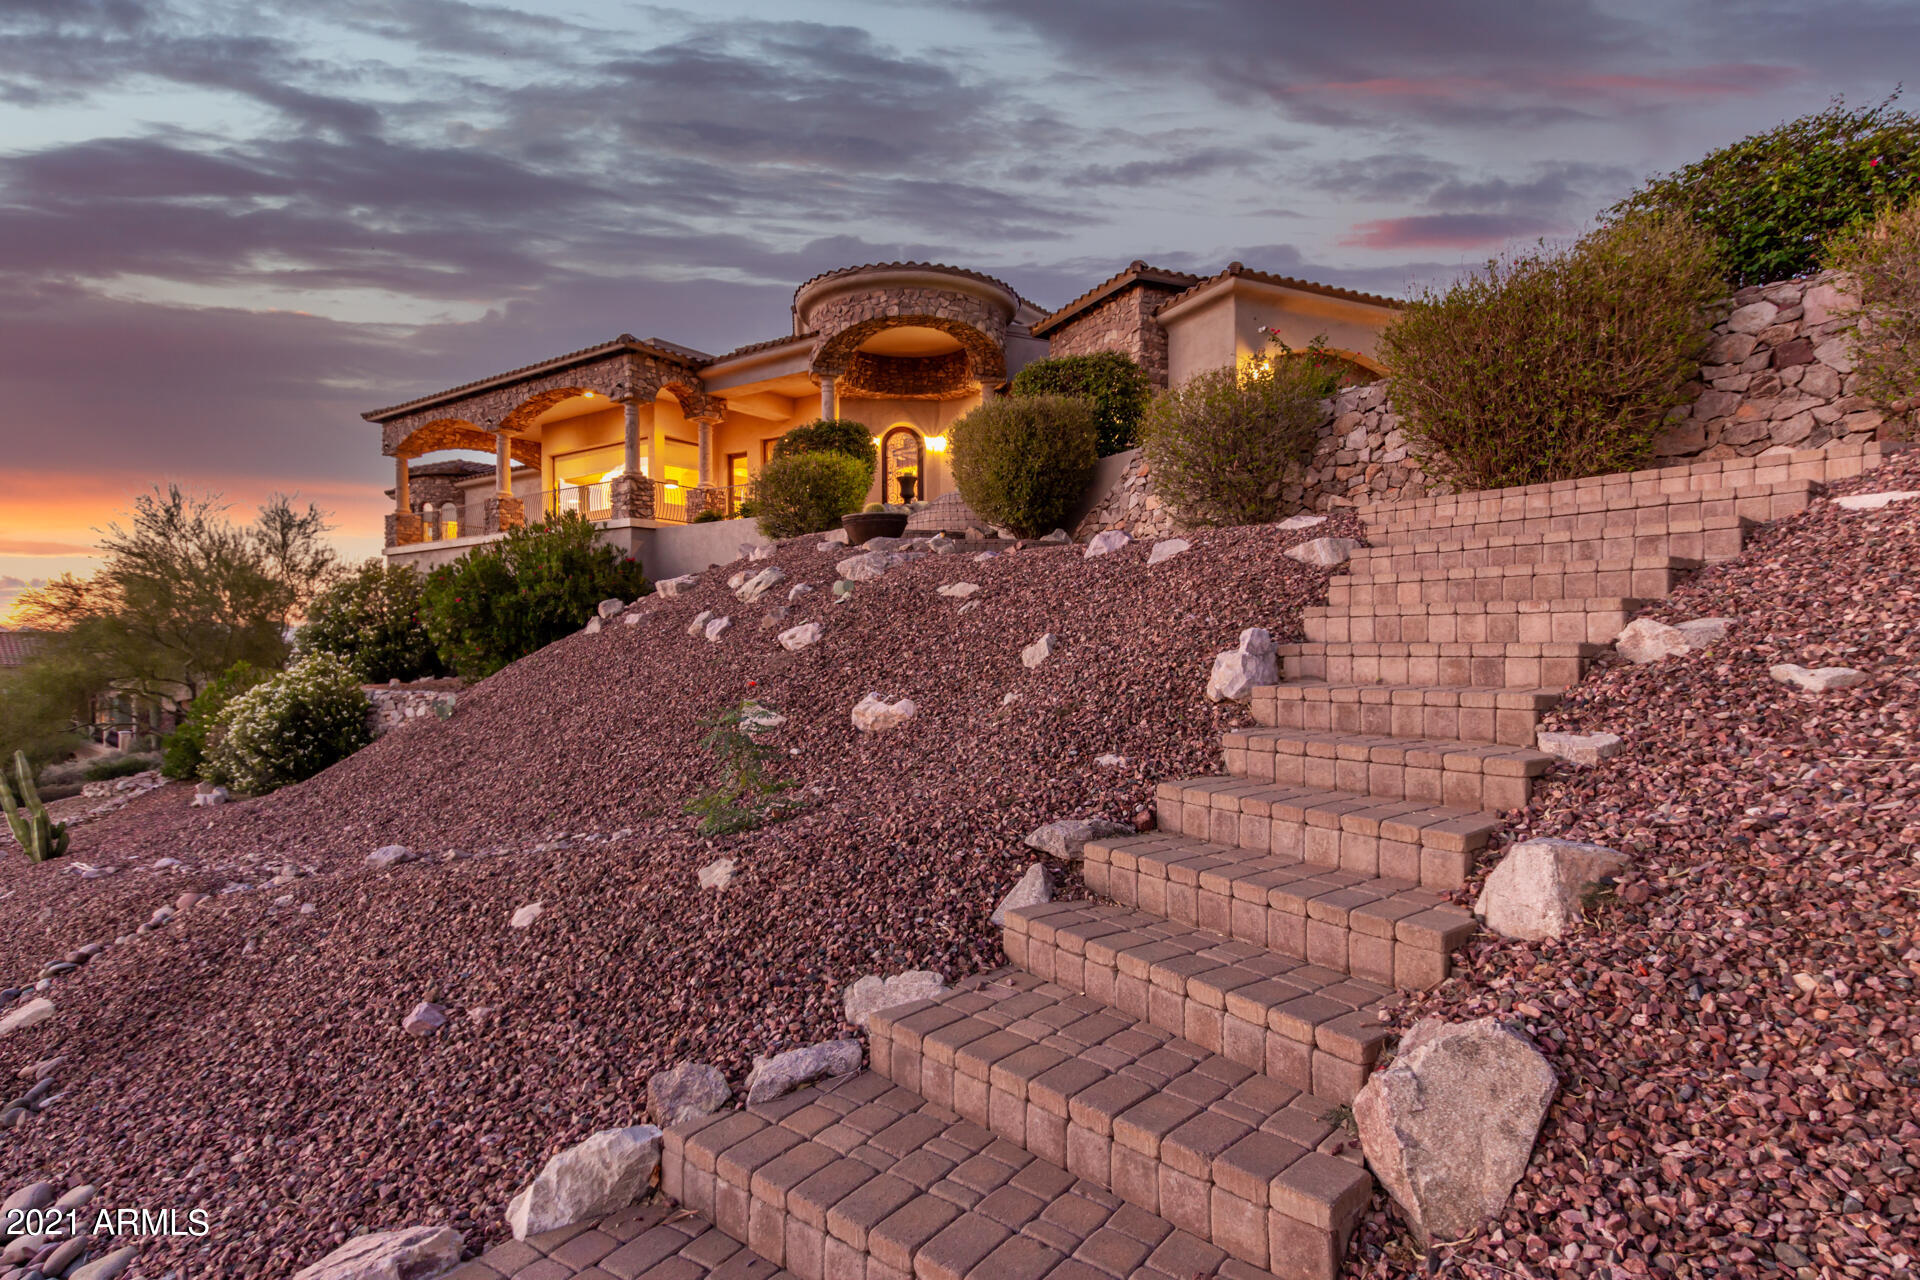 3641 SqFt House In Gold Canyon